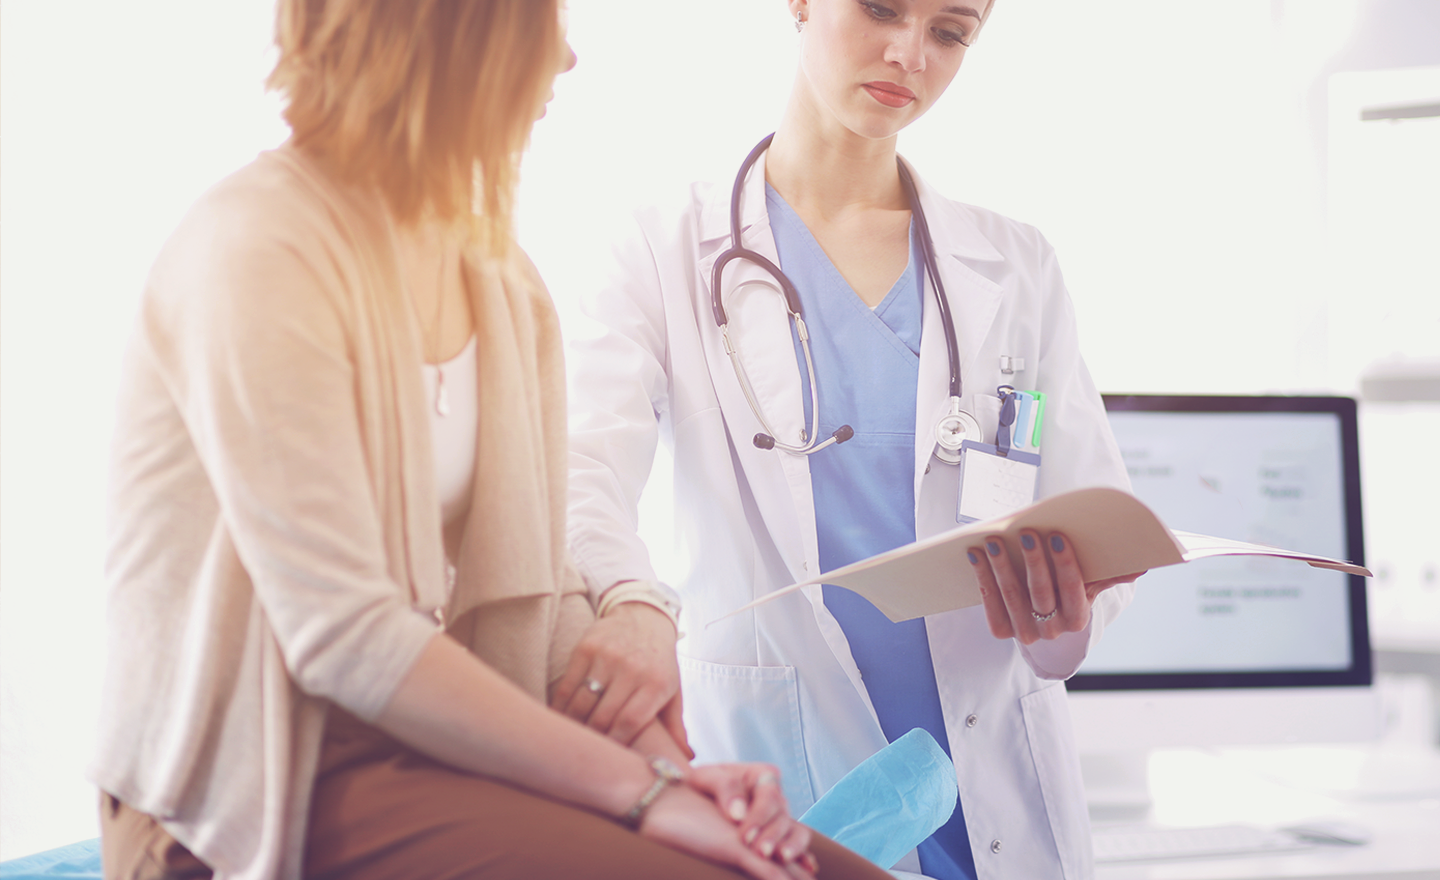 Female doctor goes over medical information in doctor's office with female patient